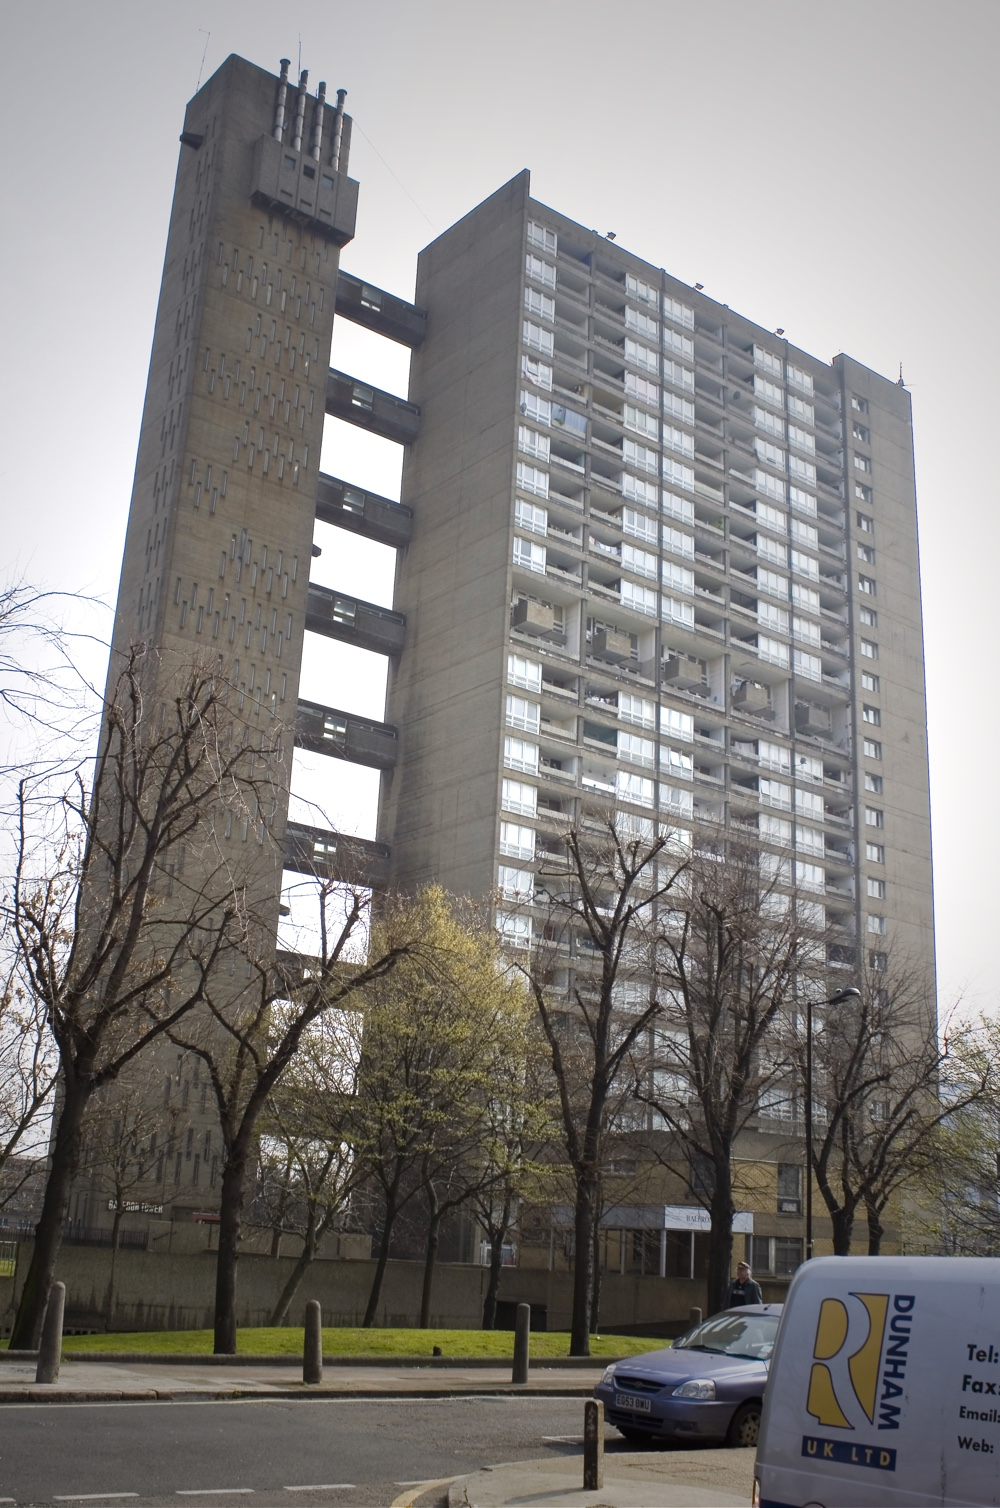 Balfron Tower by by Graeme Maclean